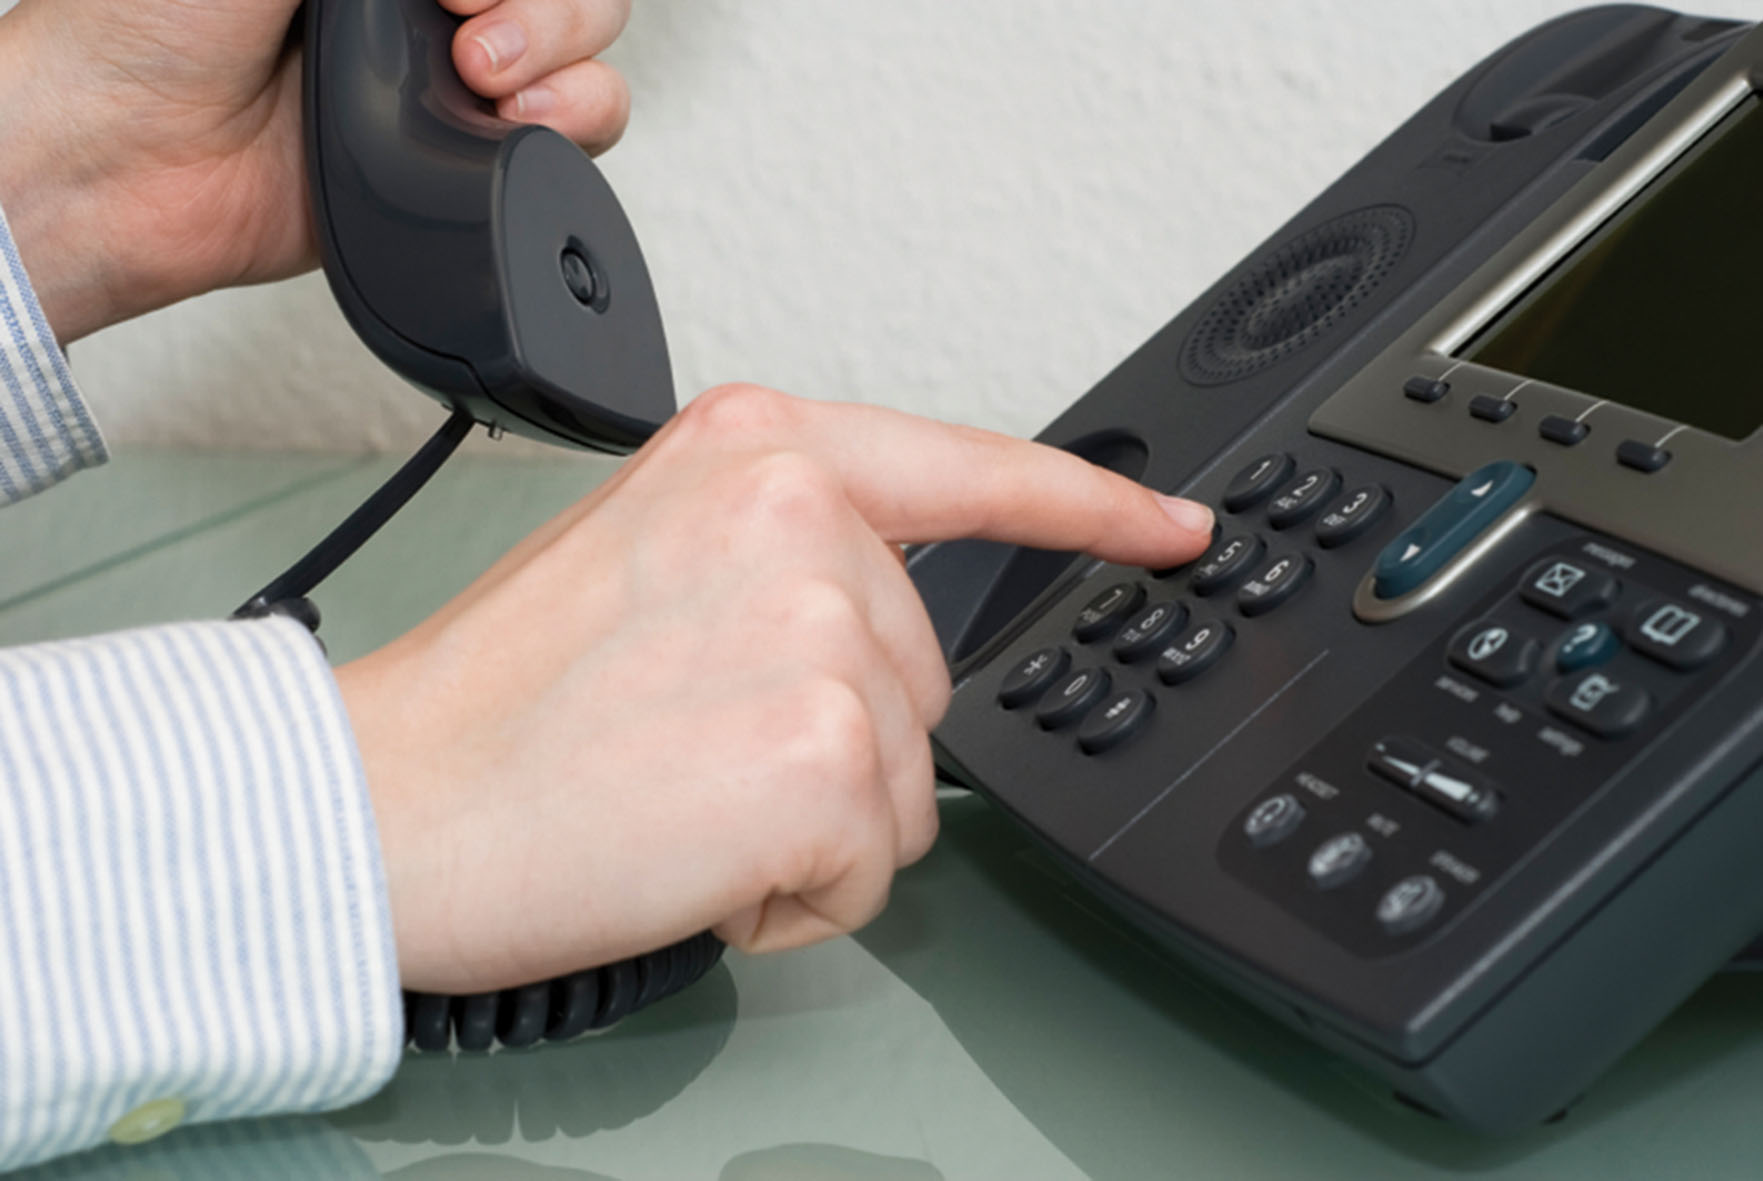 Cisco Phone Services: Call list CUCM on IP phone and in Jabber